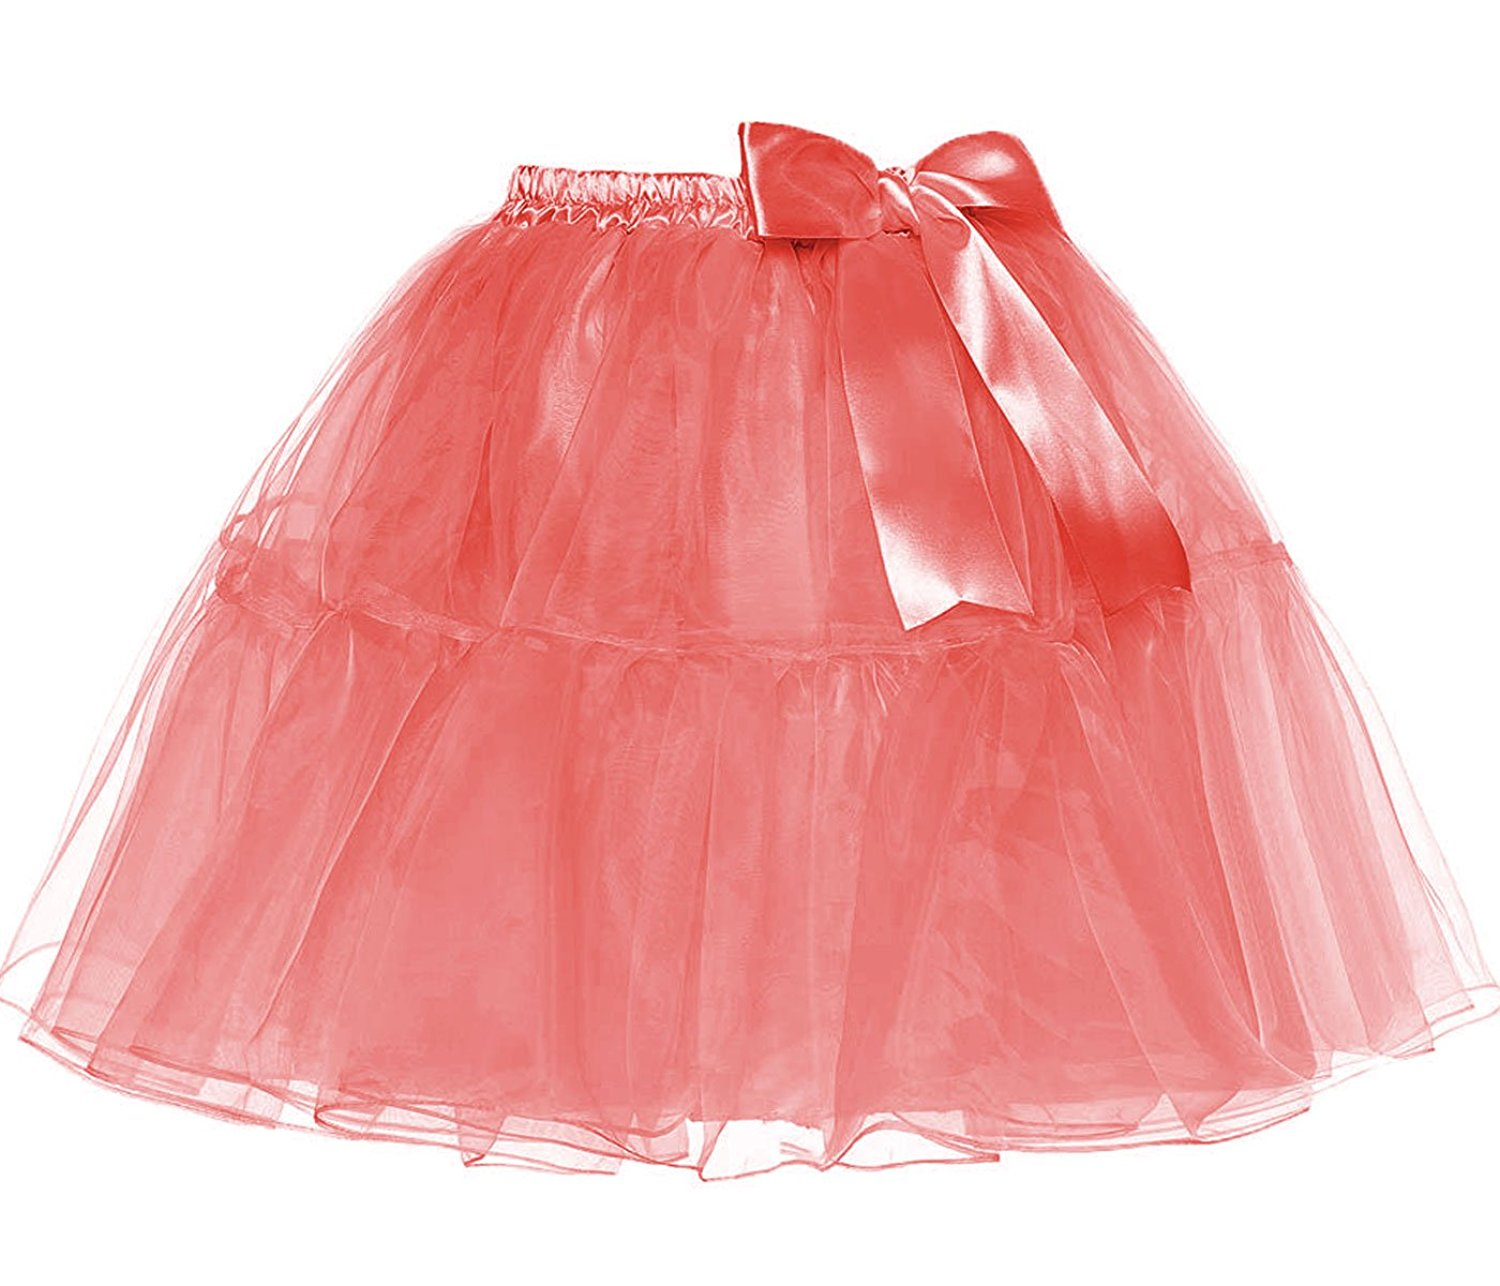 30e0c243af Get Quotations · DYS Women's 1950s Knee Length Petticoat Slips Organza Petticoats  Skirt Bowknot